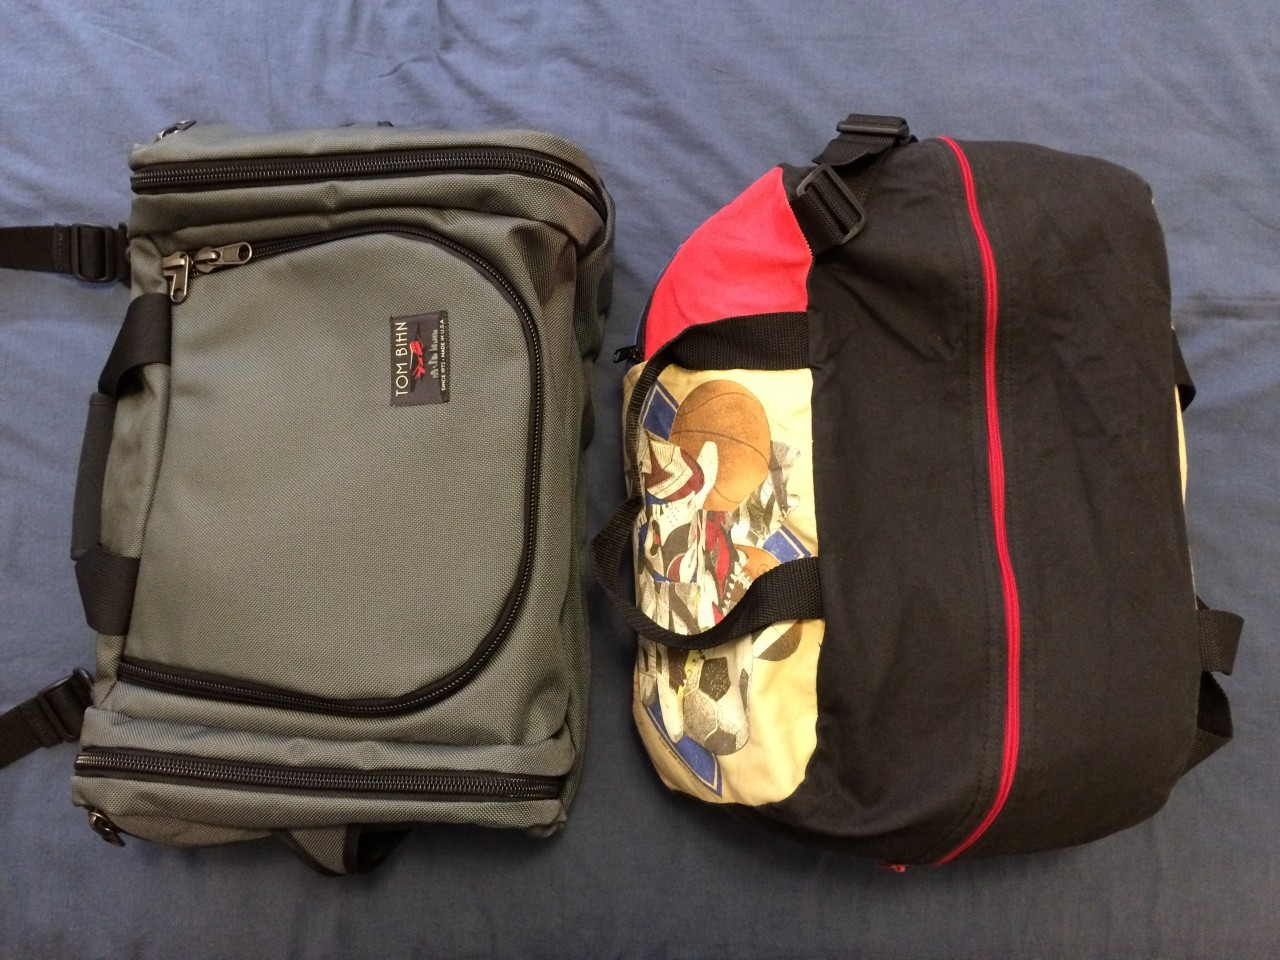 Duffel bags compartment entry comparison